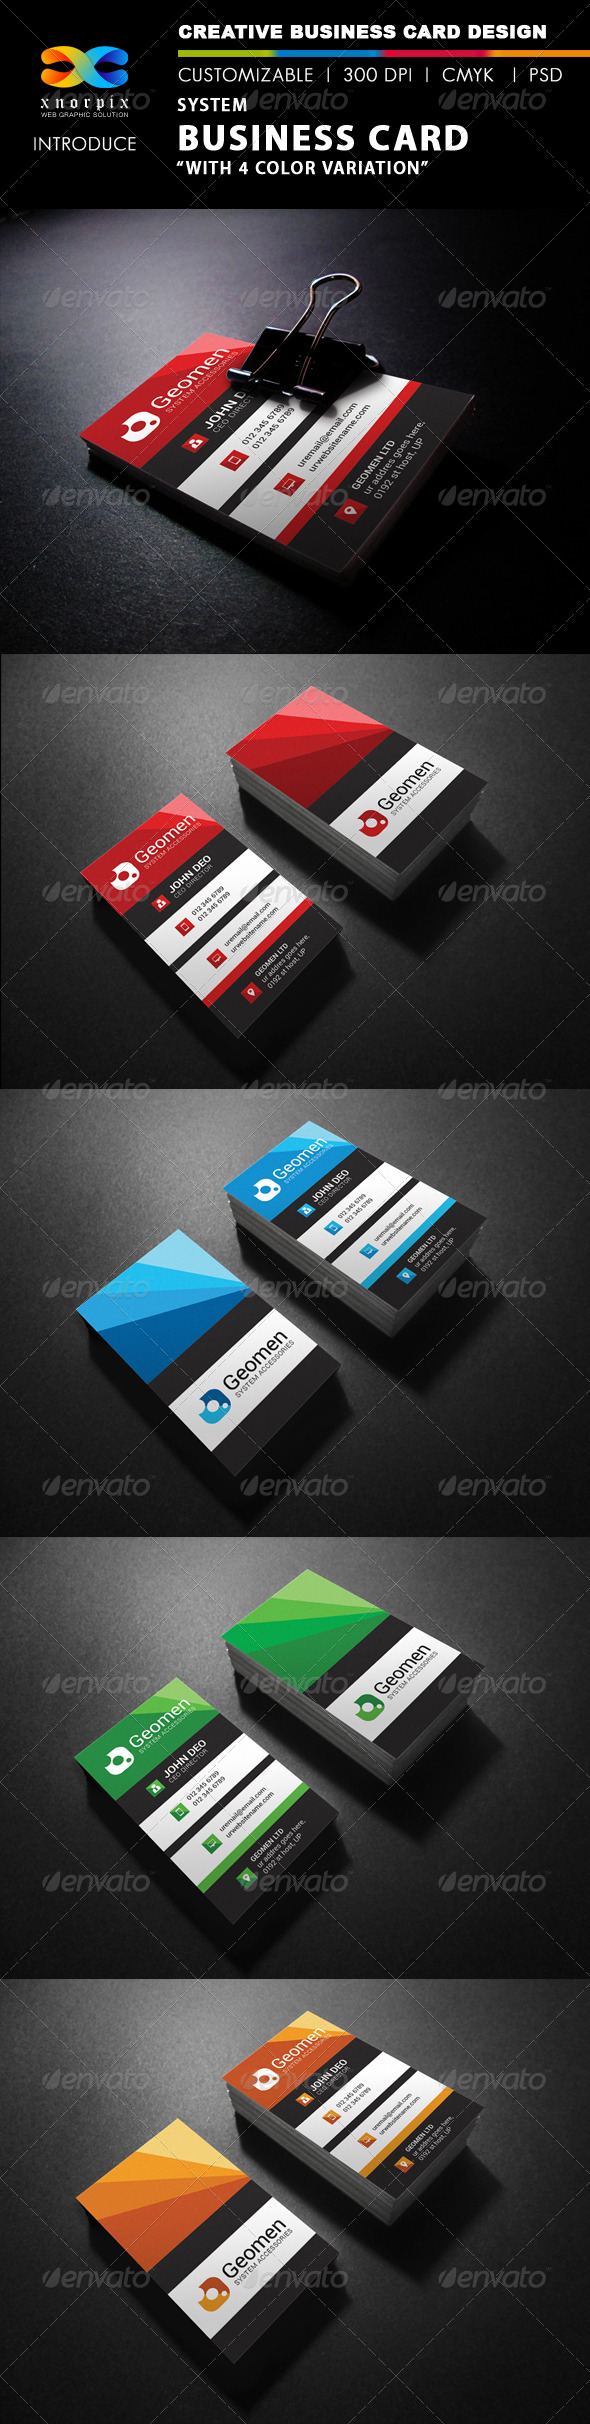 GraphicRiver System Business Card 7901718